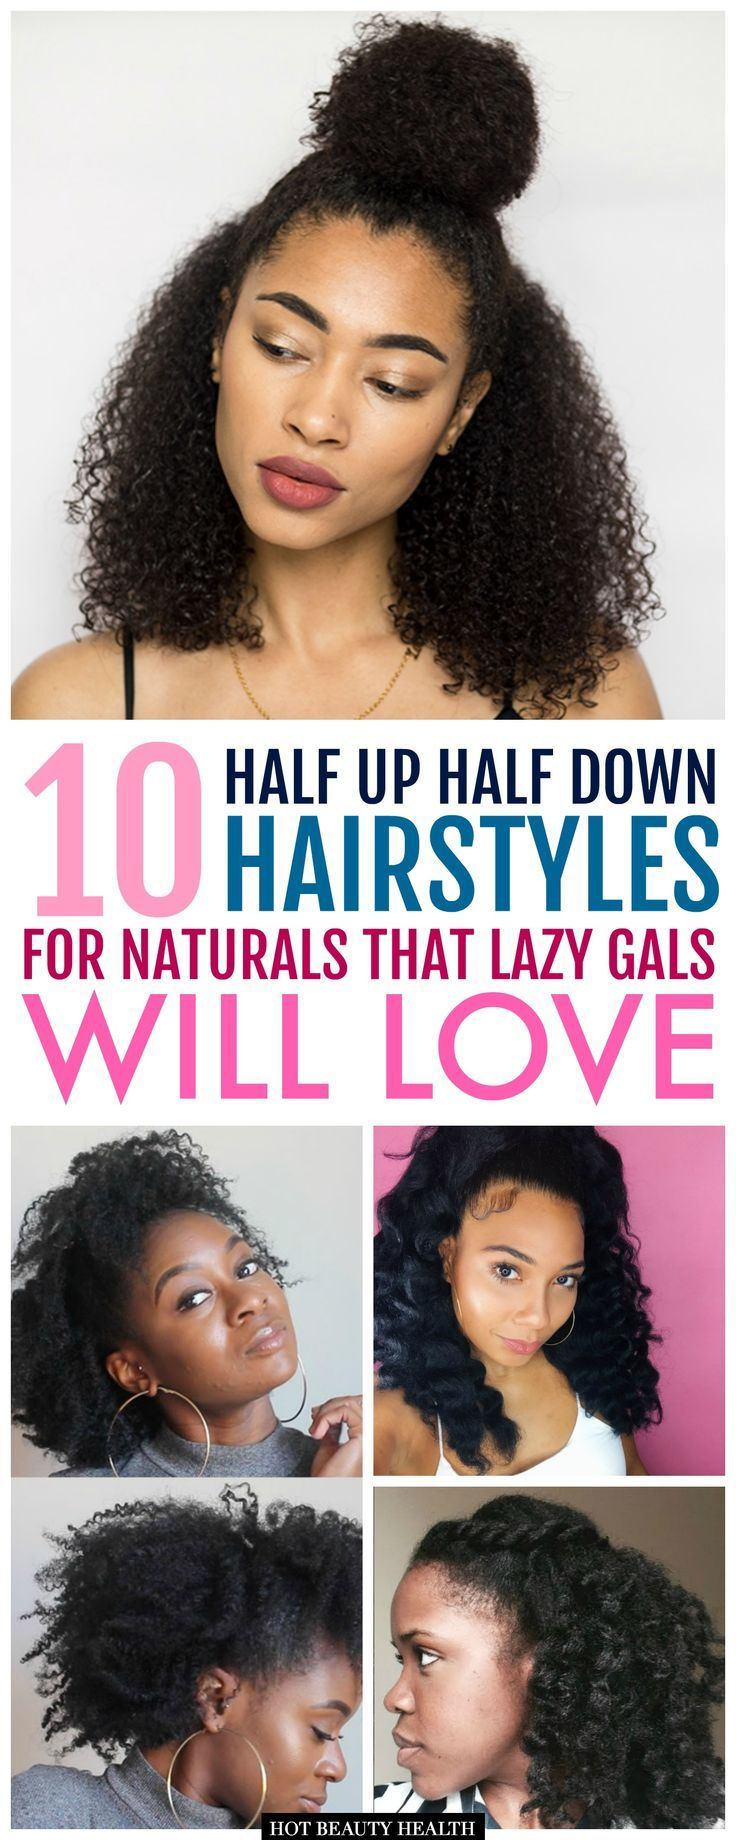 10 Easy Half Up Half Down Hairstyles For Natural Hair Gals With Images Half Up Hair Braids For Medium Length Hair Quick Natural Hair Styles